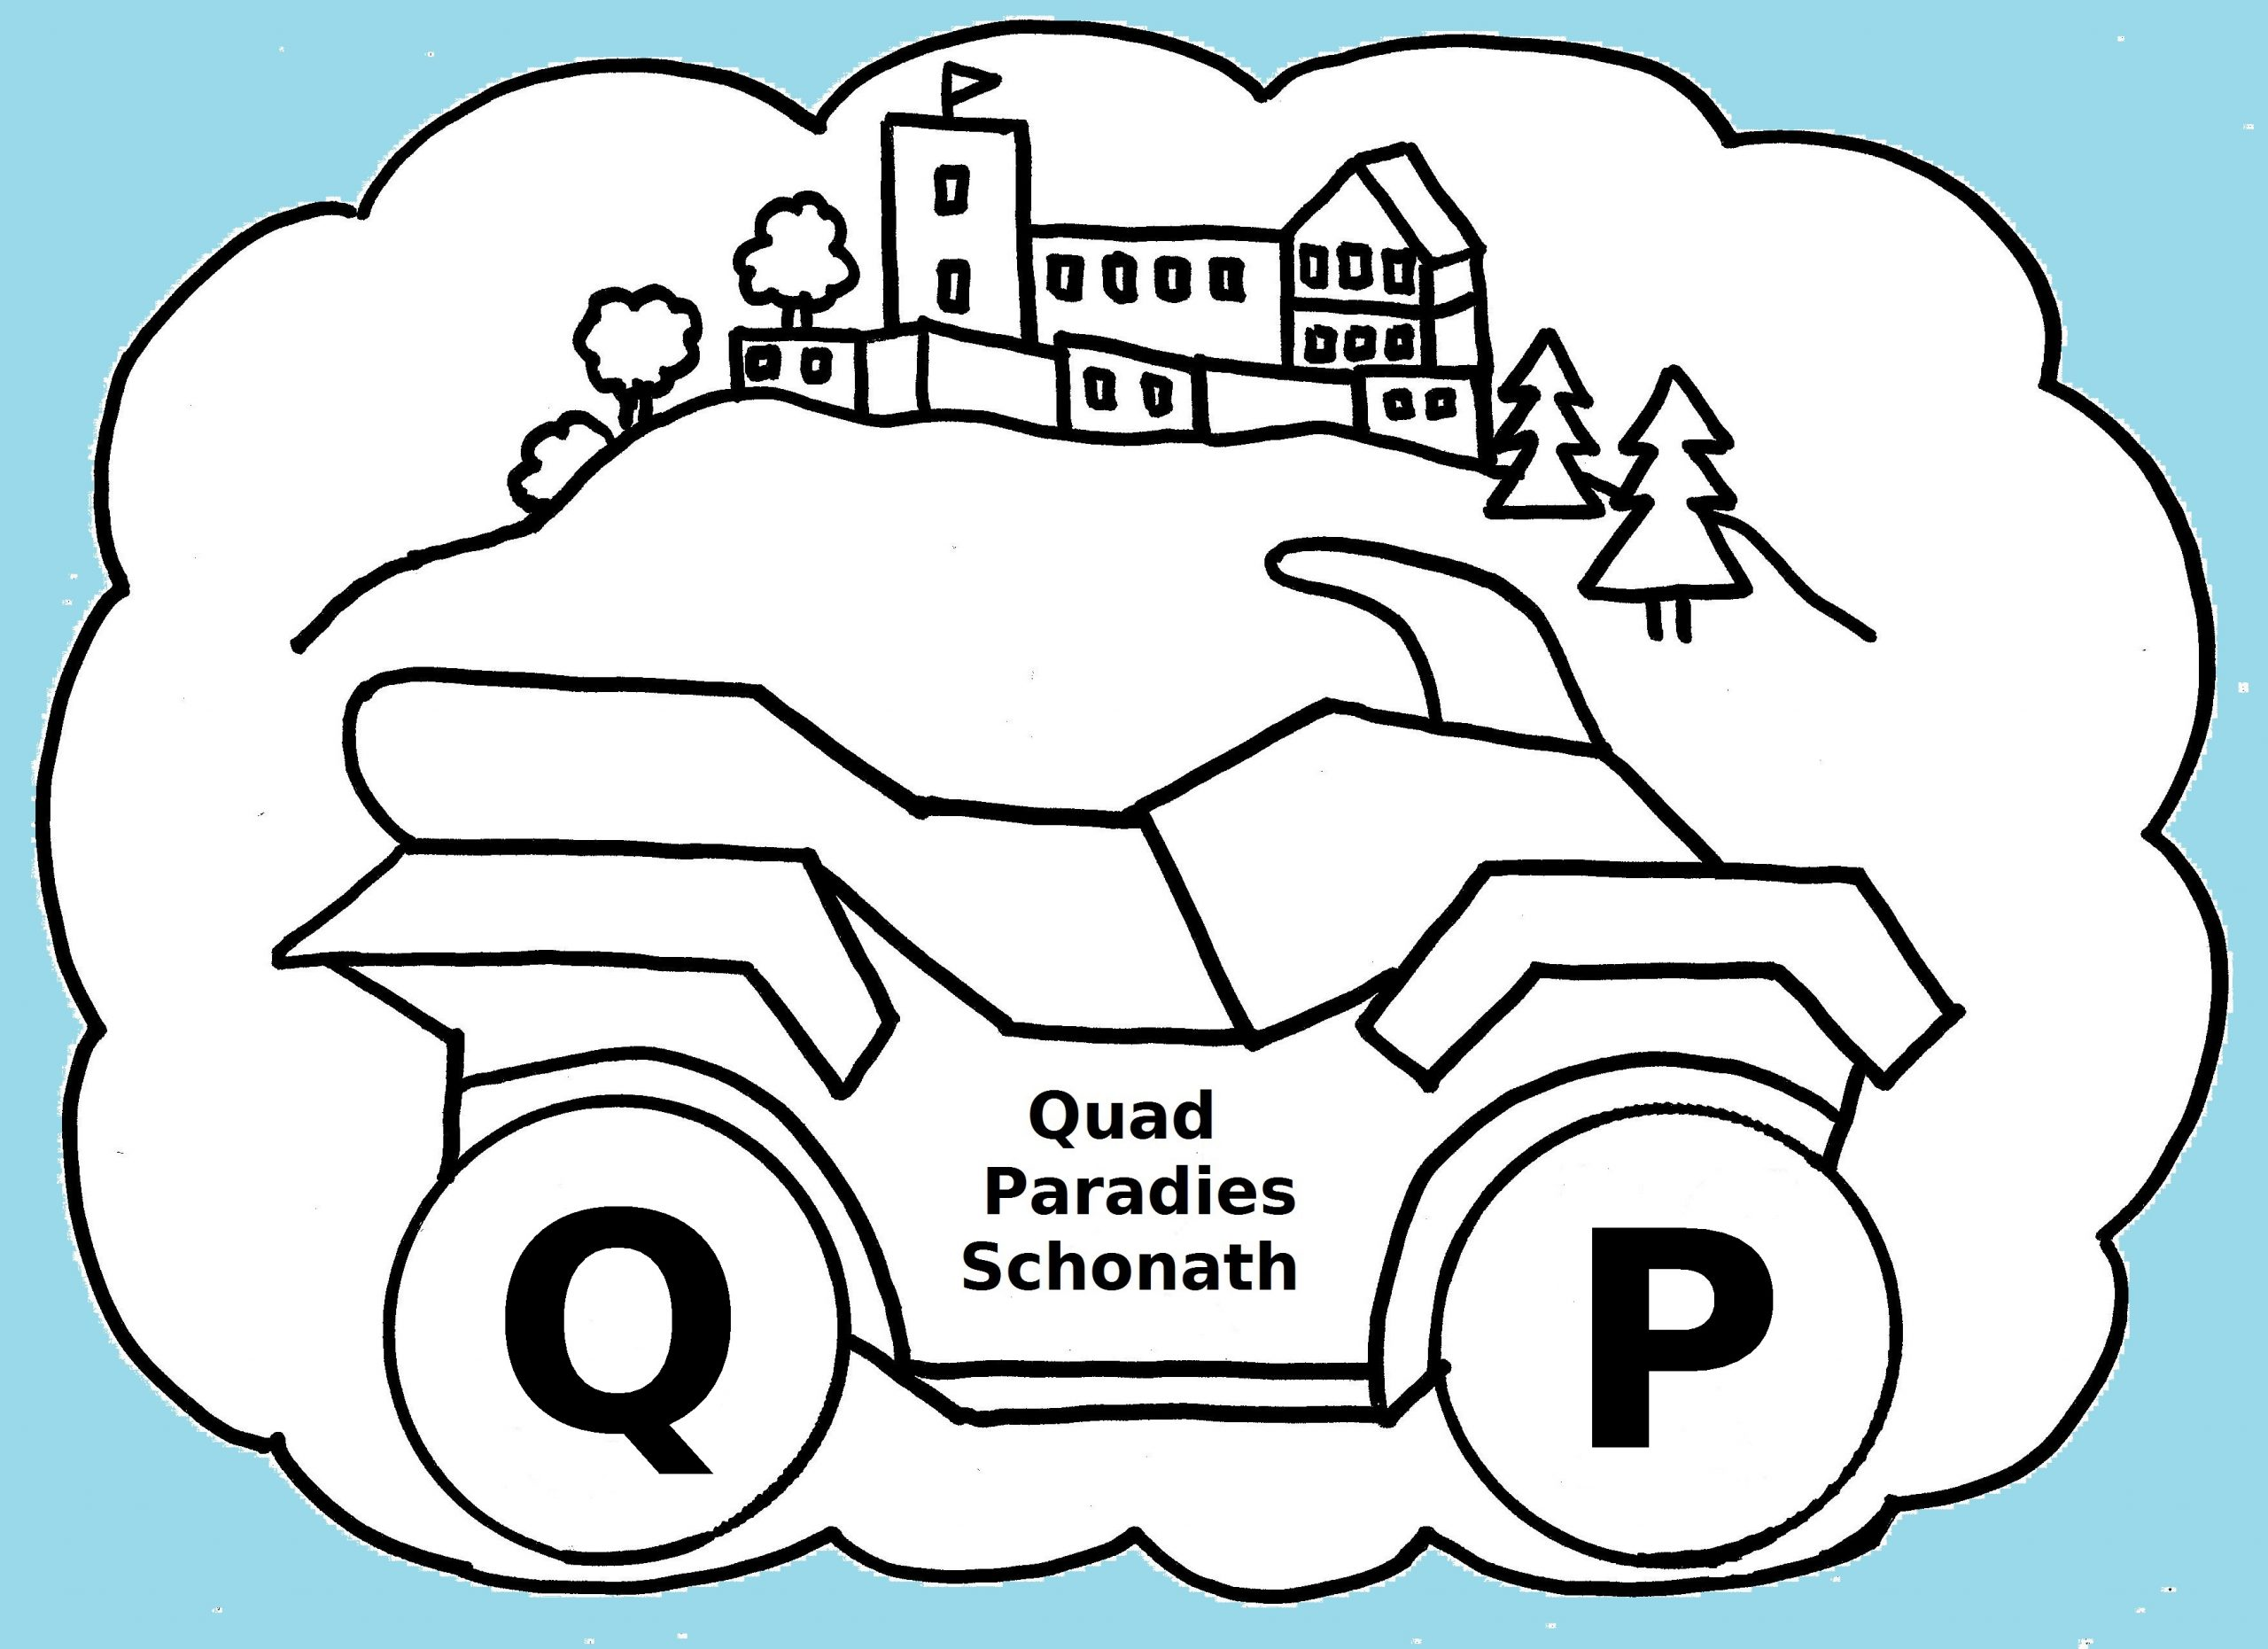 Quadparadies Schonath